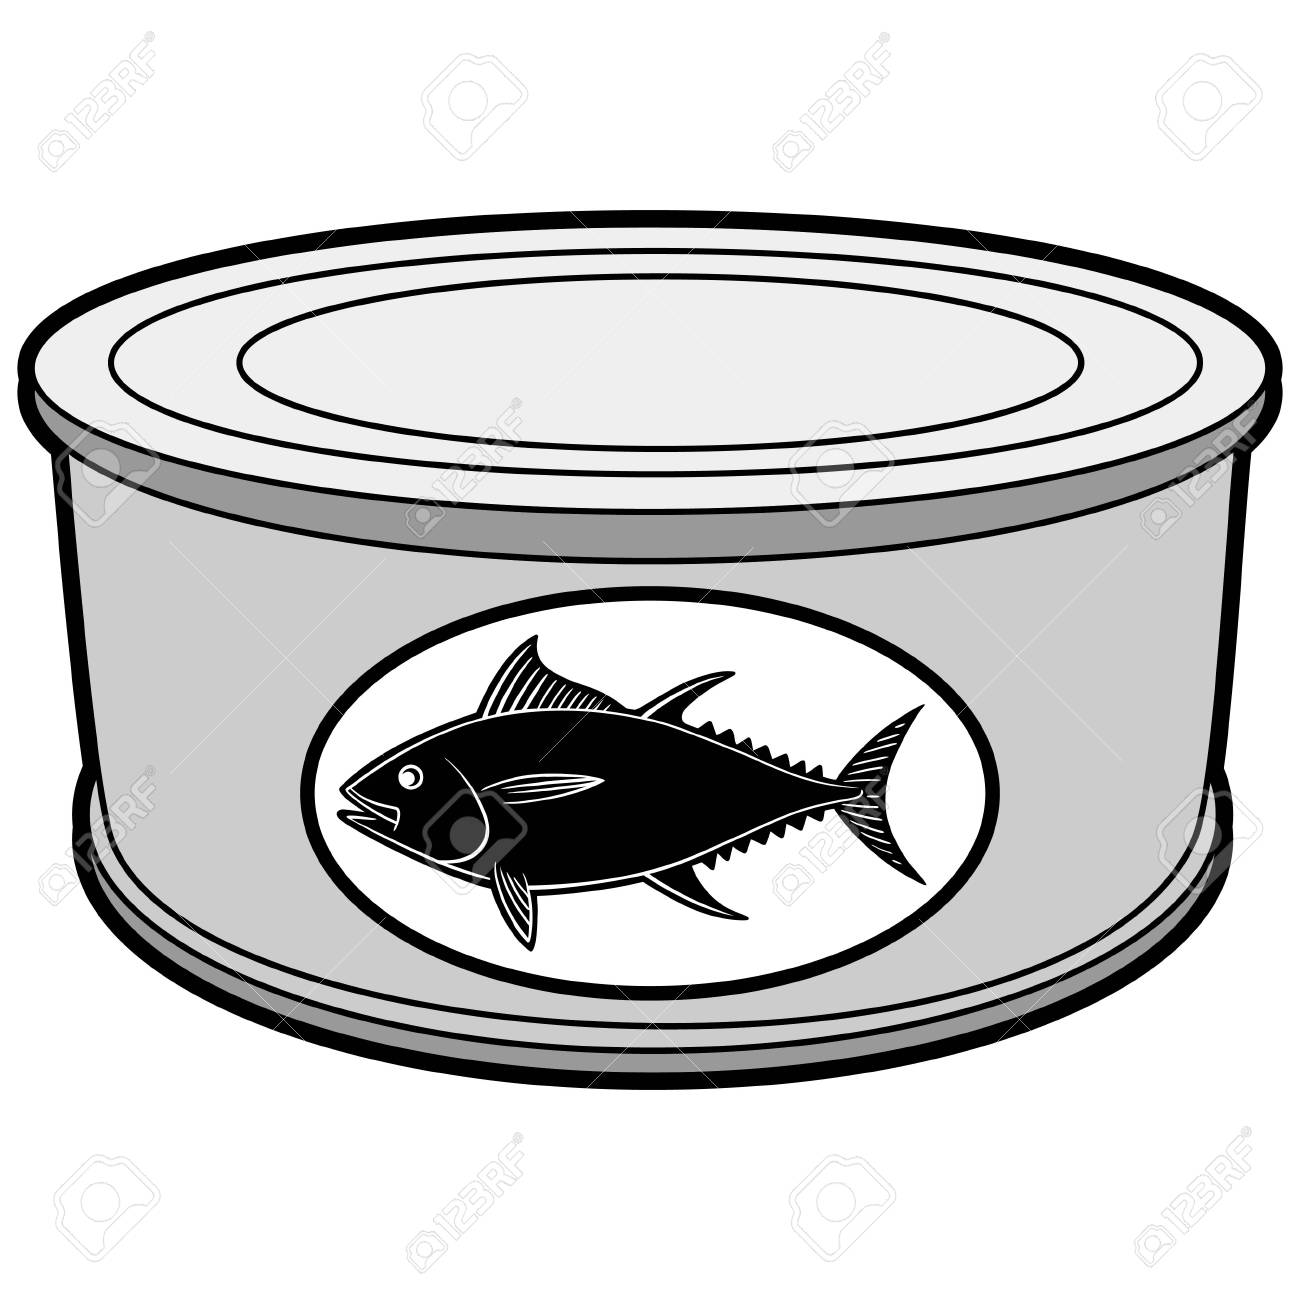 Tuna Can Clipart & Free Clip Art Images #29756.